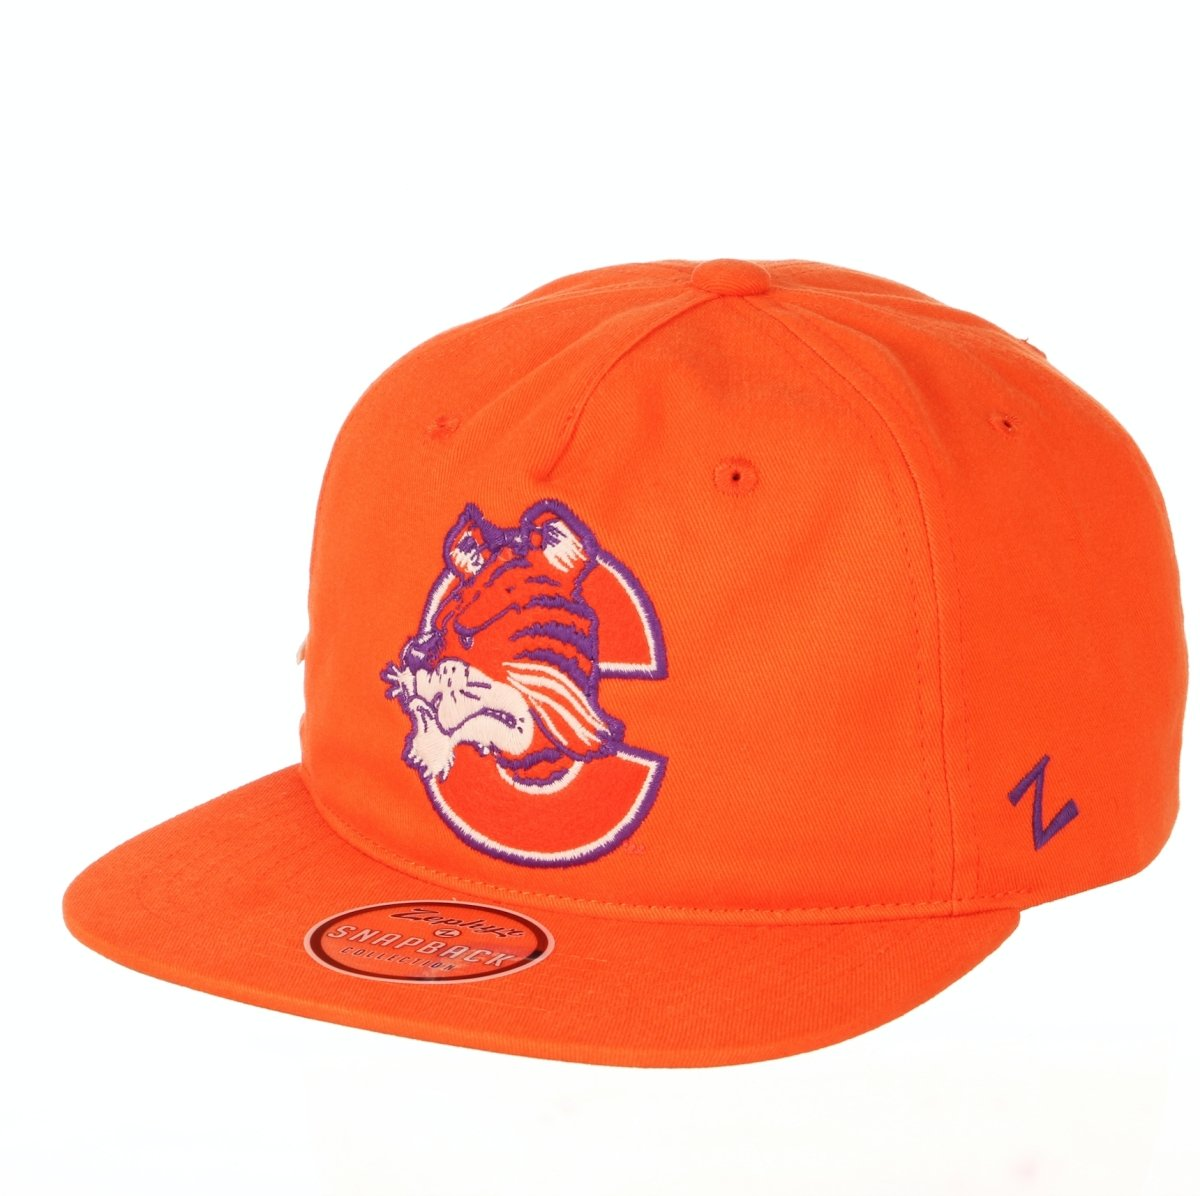 Clemson Tigers Vault Logo Adjustable Snapback - Orange - Mr. Knickerbocker